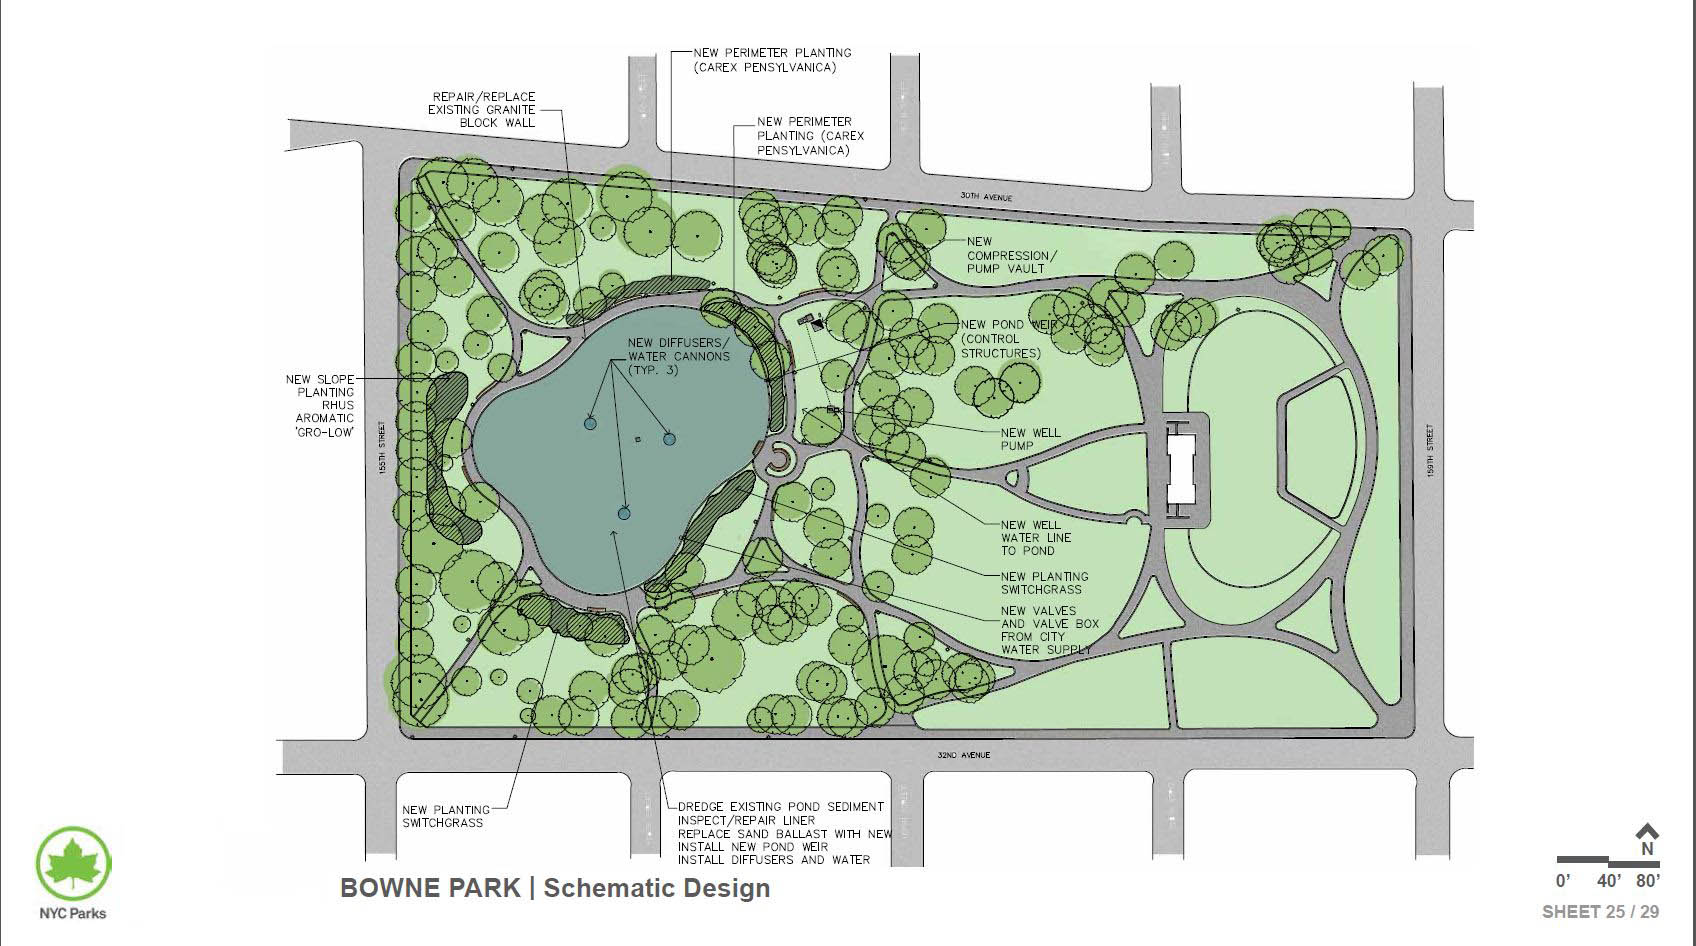 Design of Bowne Park Pond Reconstruction